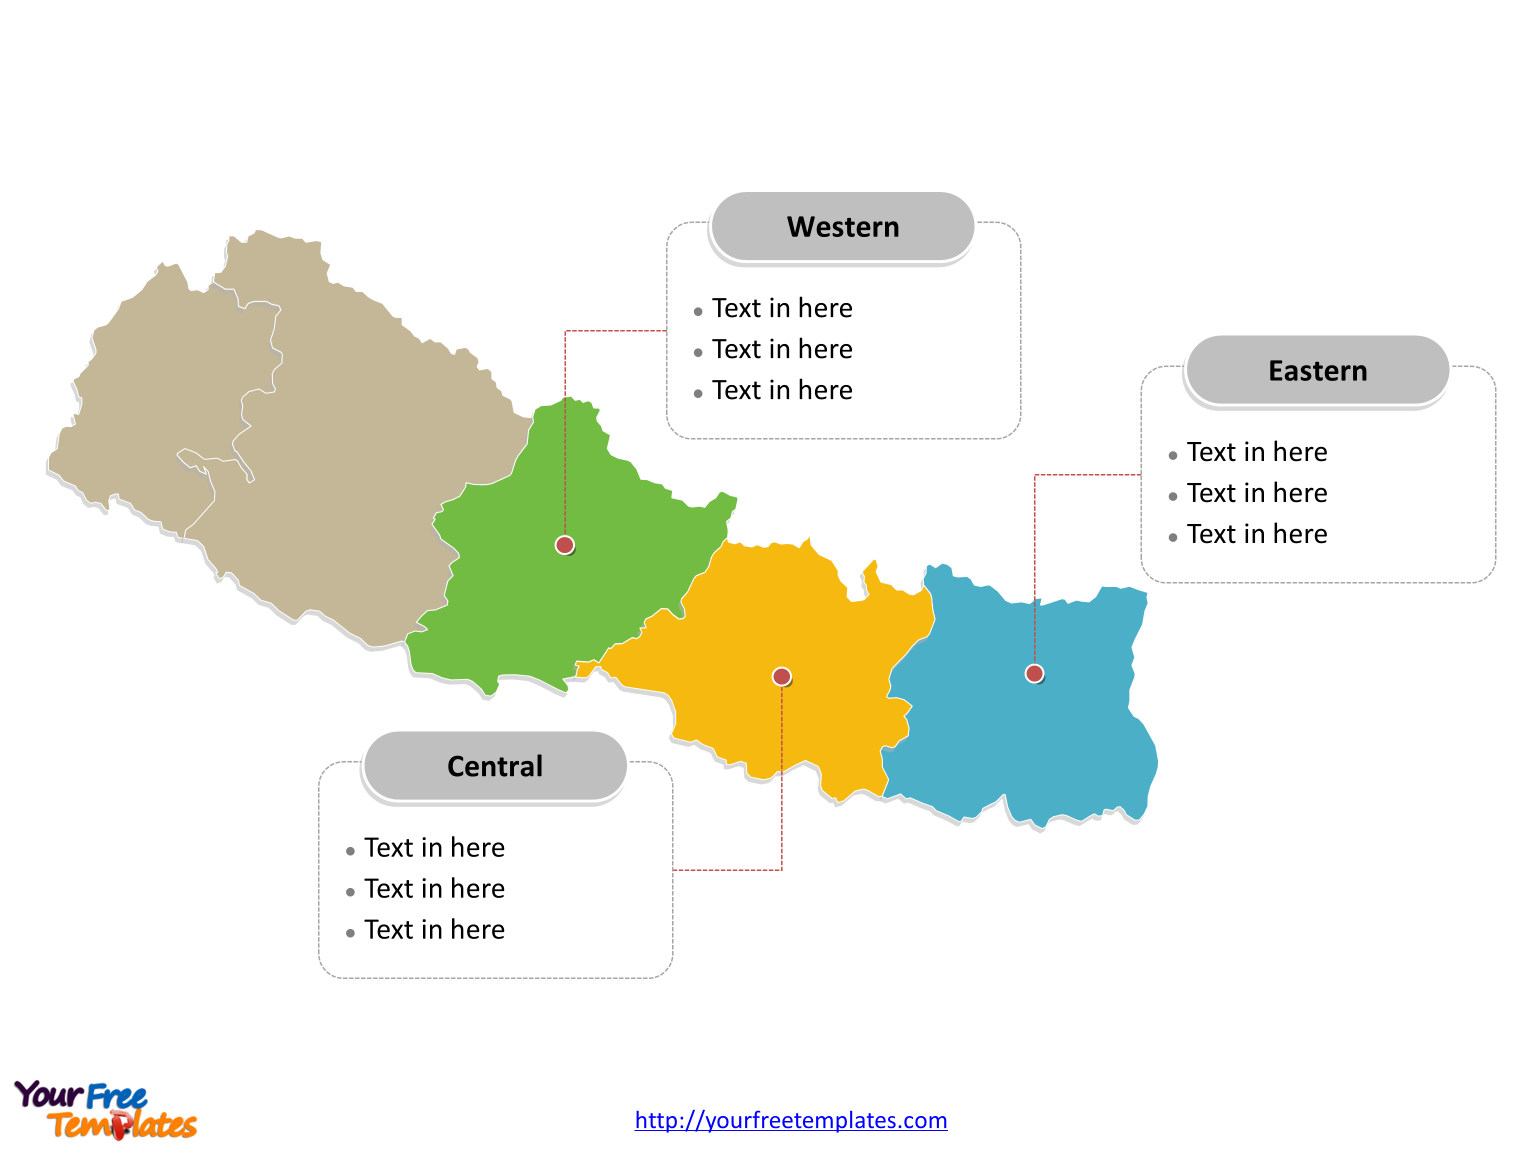 Nepal region map labeled with major development regions